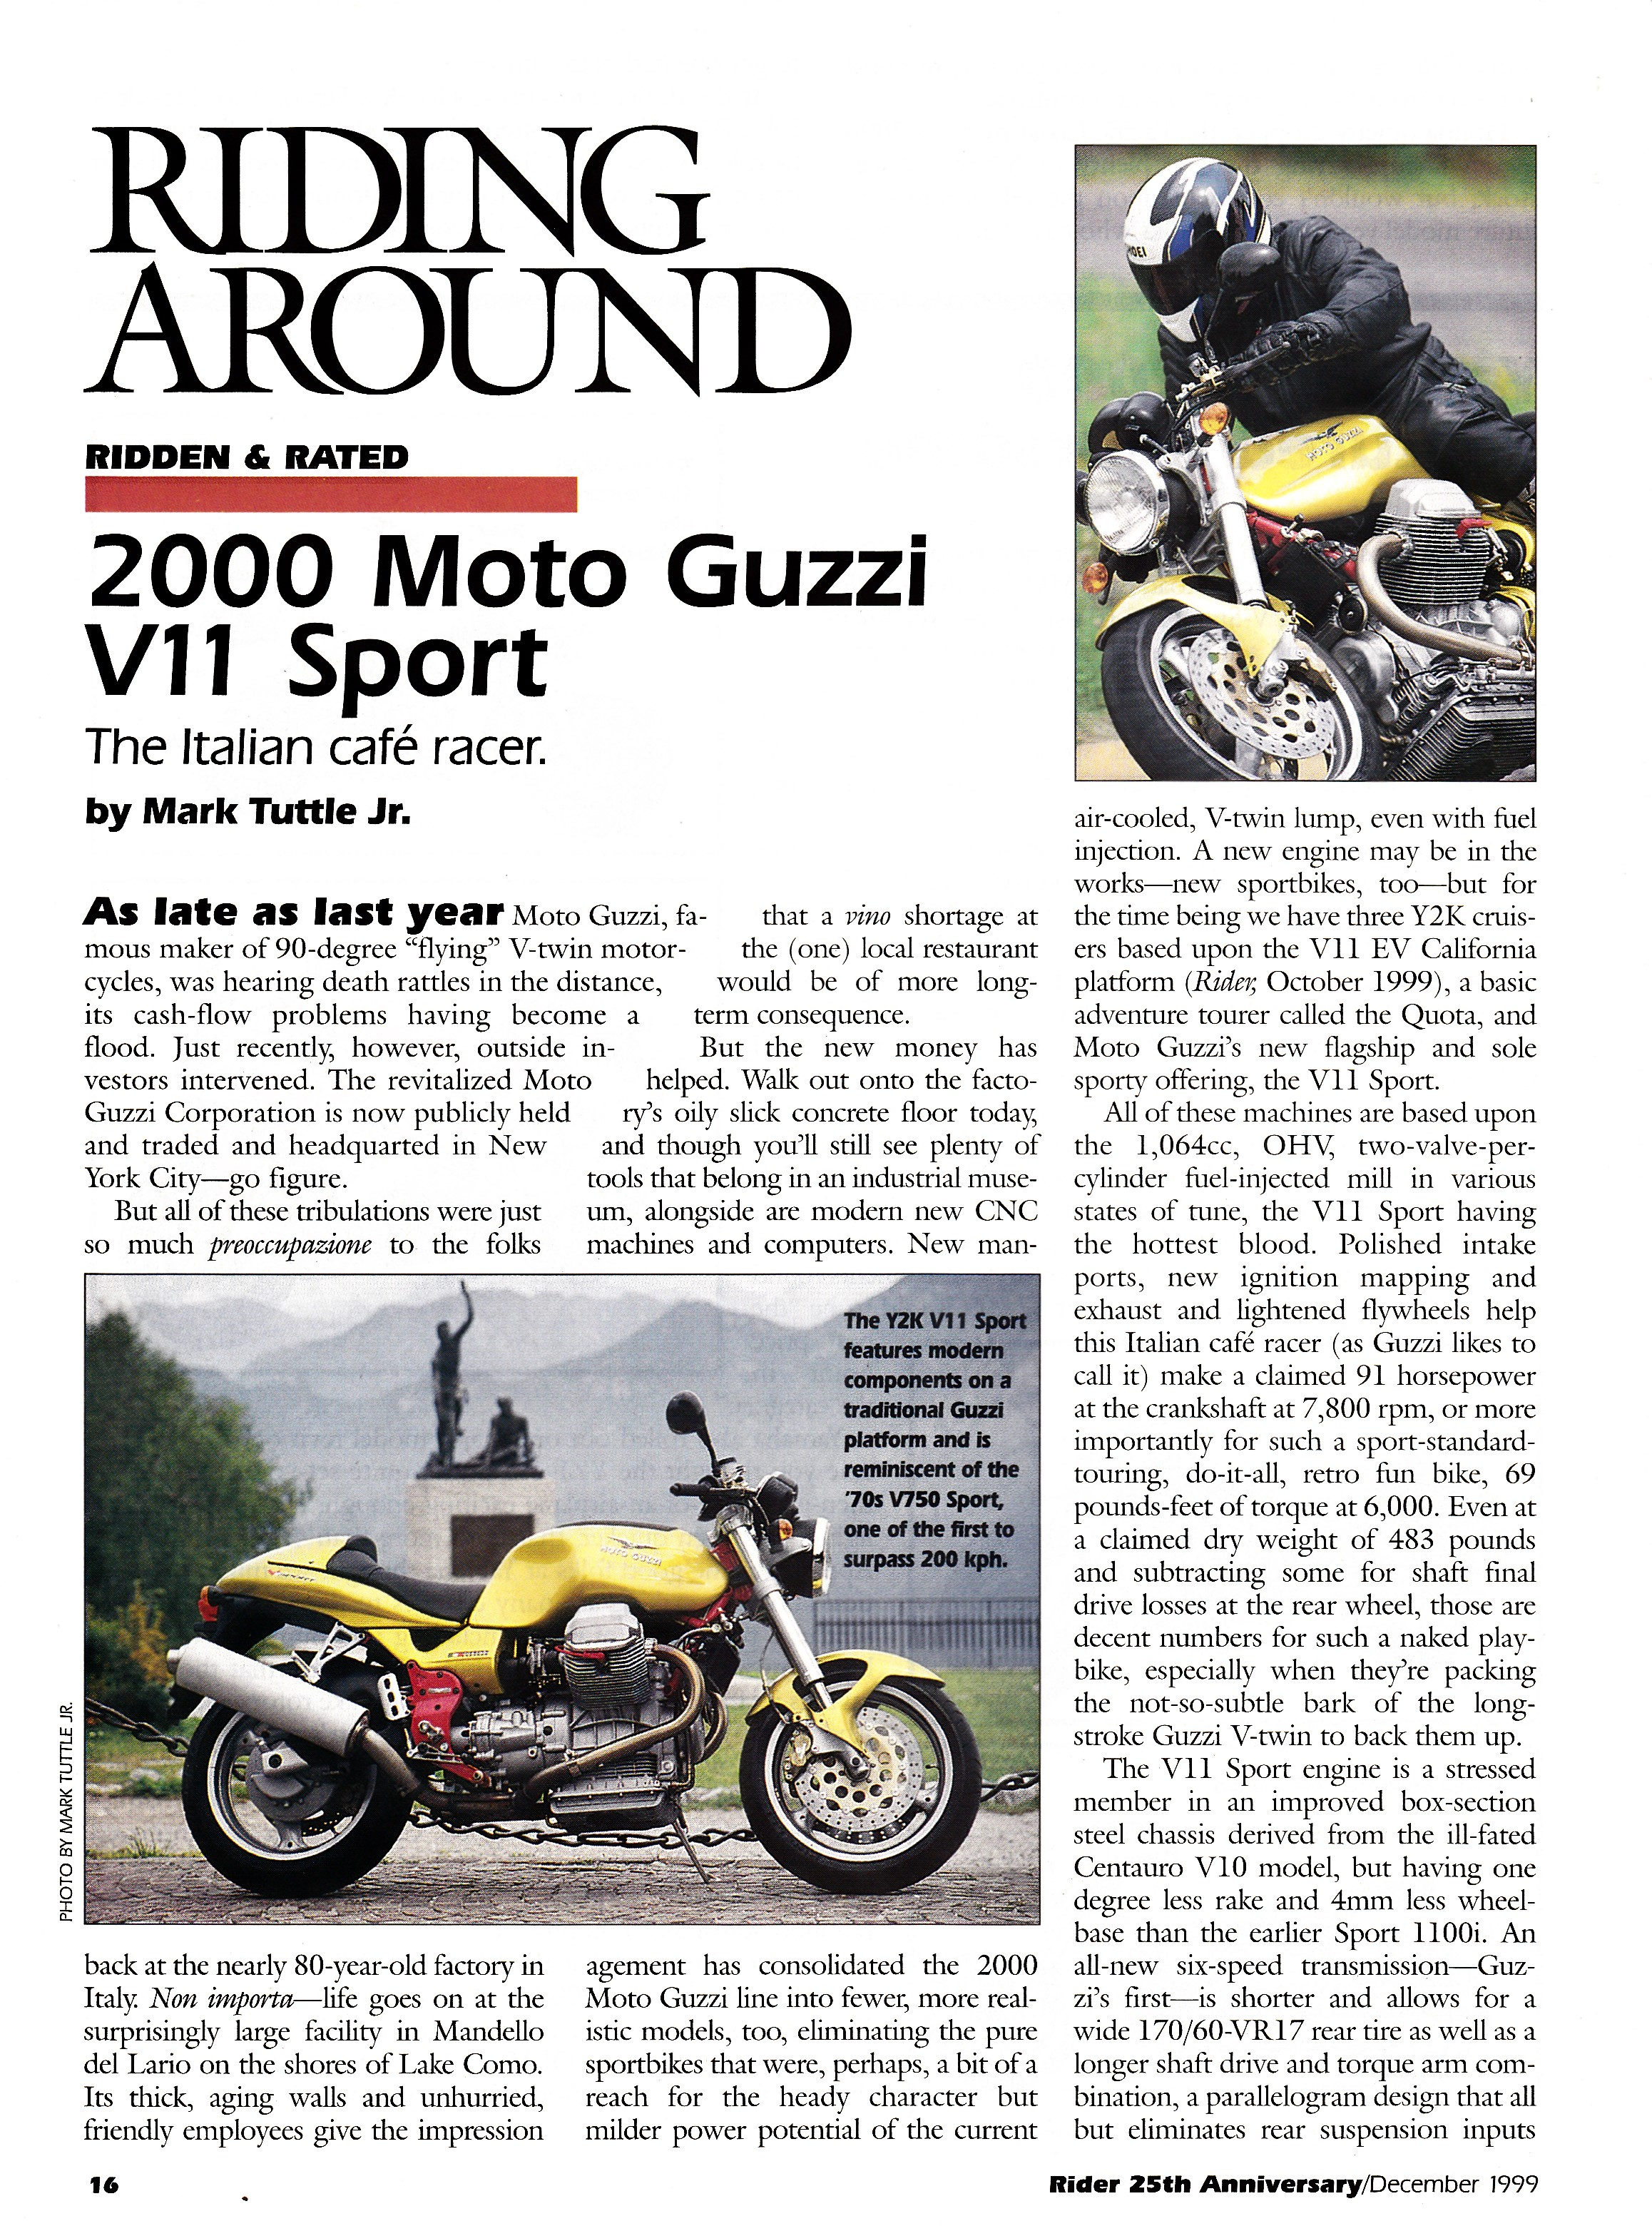 Article - Rider (1999 December) 2000 Moto Guzzi V11 Sport: The Italian café racer.